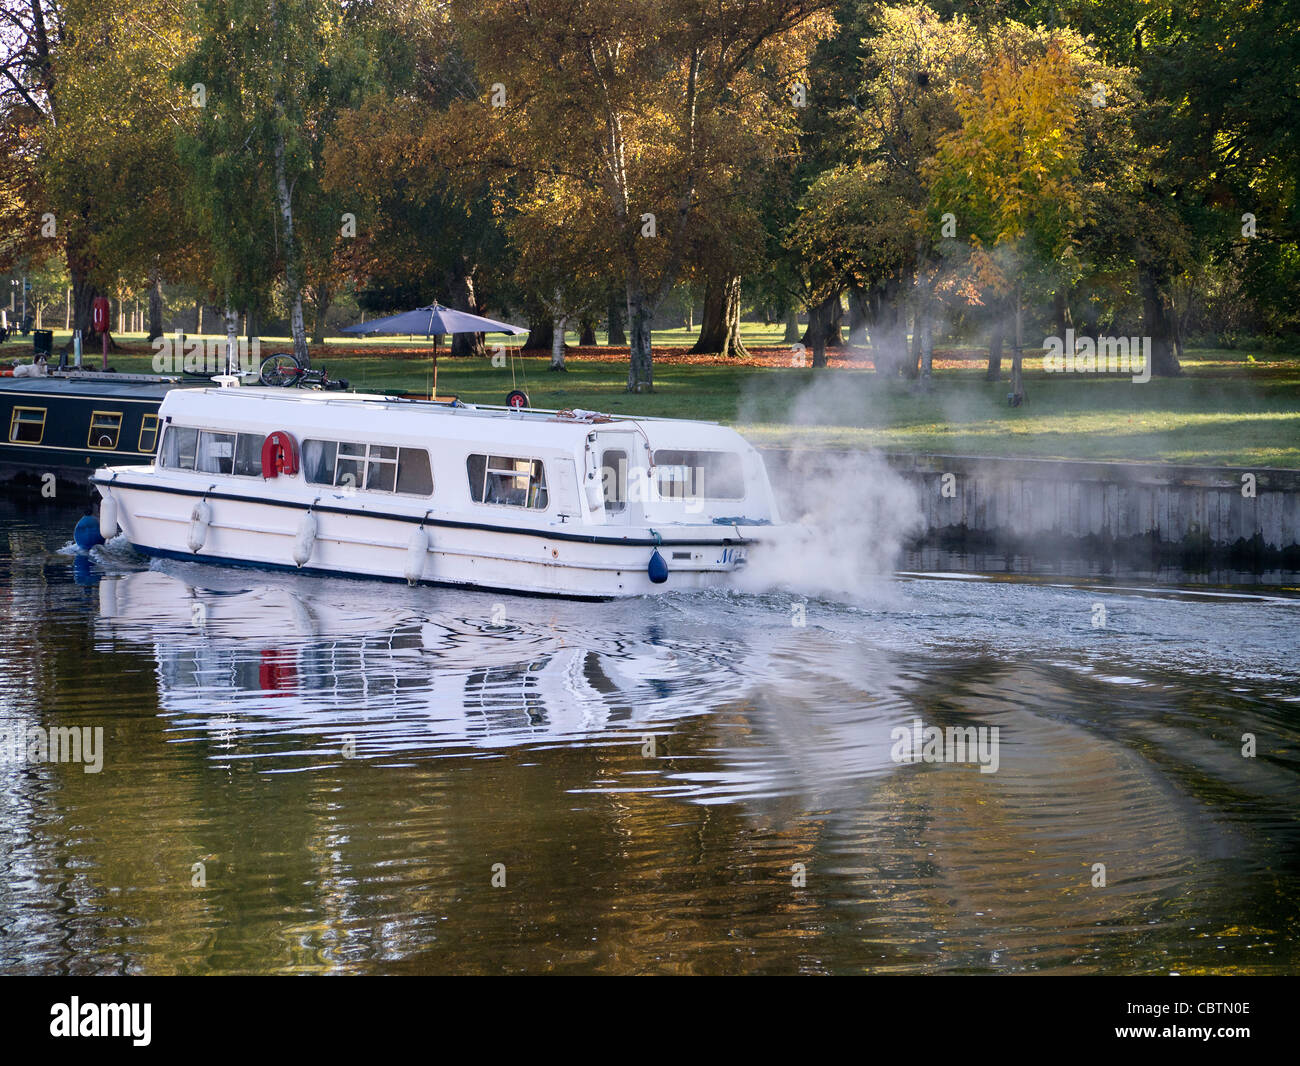 Pleasure boat emitting air pollution- the Thames at Abingdon - Stock Image